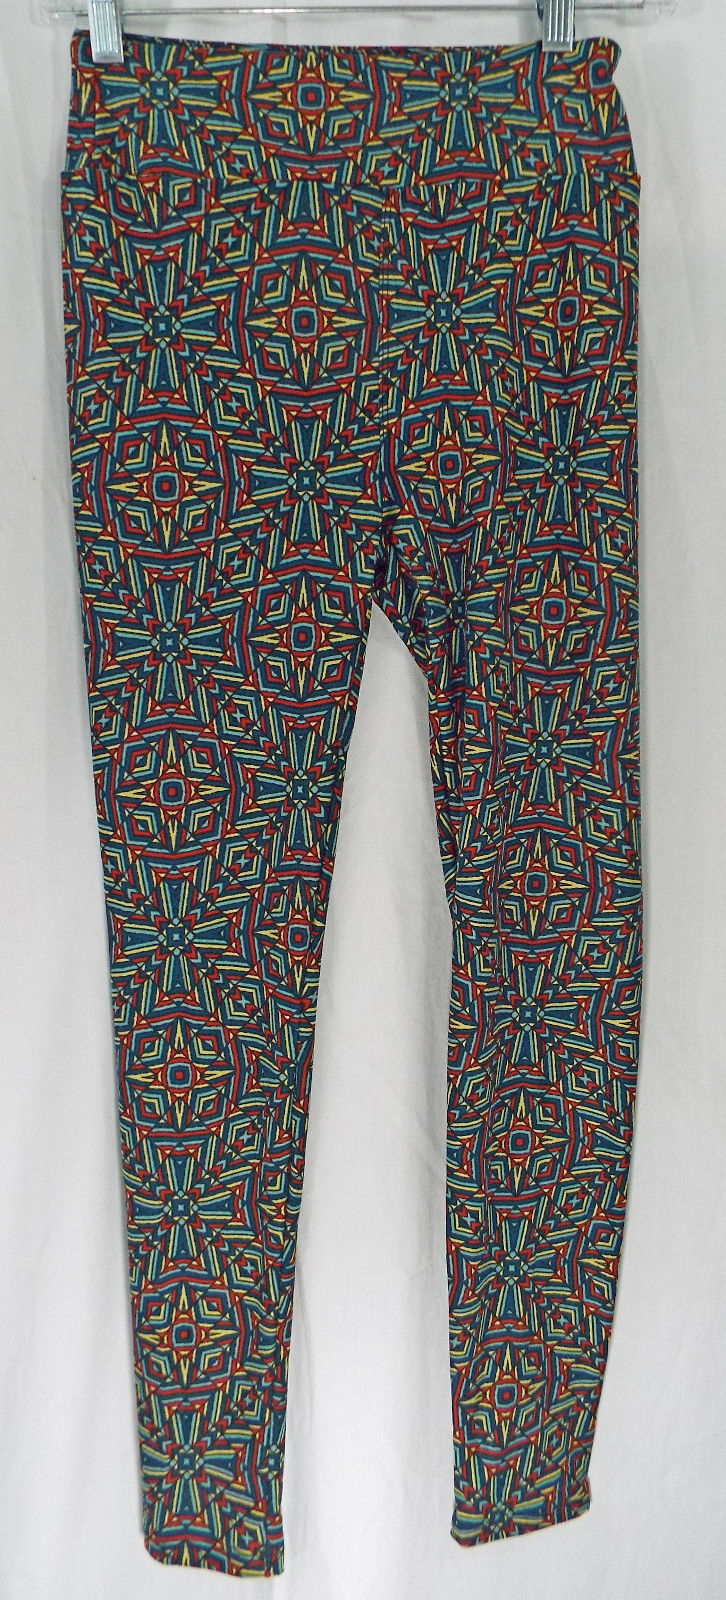 6da72b1bc51769 Women's LuLaRoe OS One Size Leggings Teal and 50 similar items